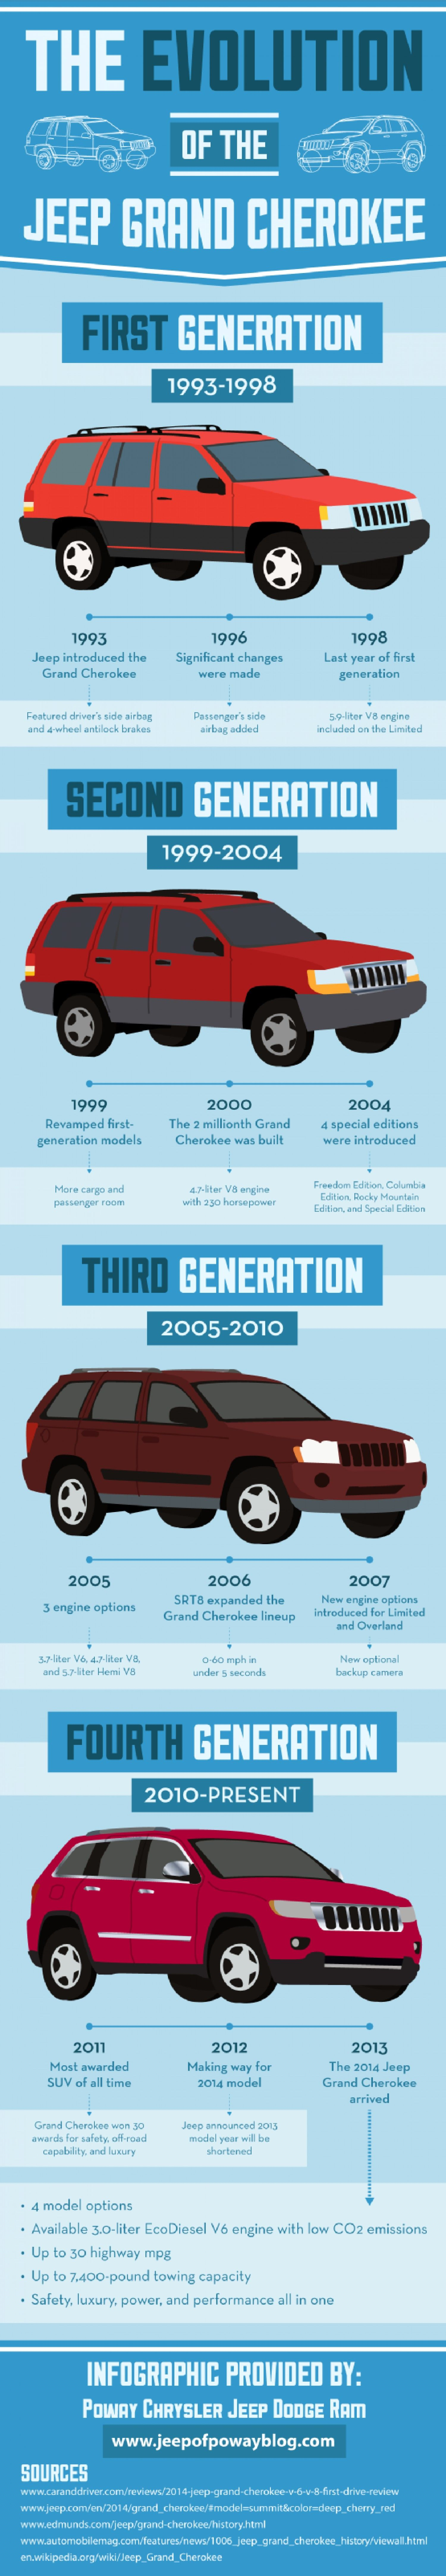 Hey San Diego Check Out The Evolution Of The Jeep Grand Cherokee